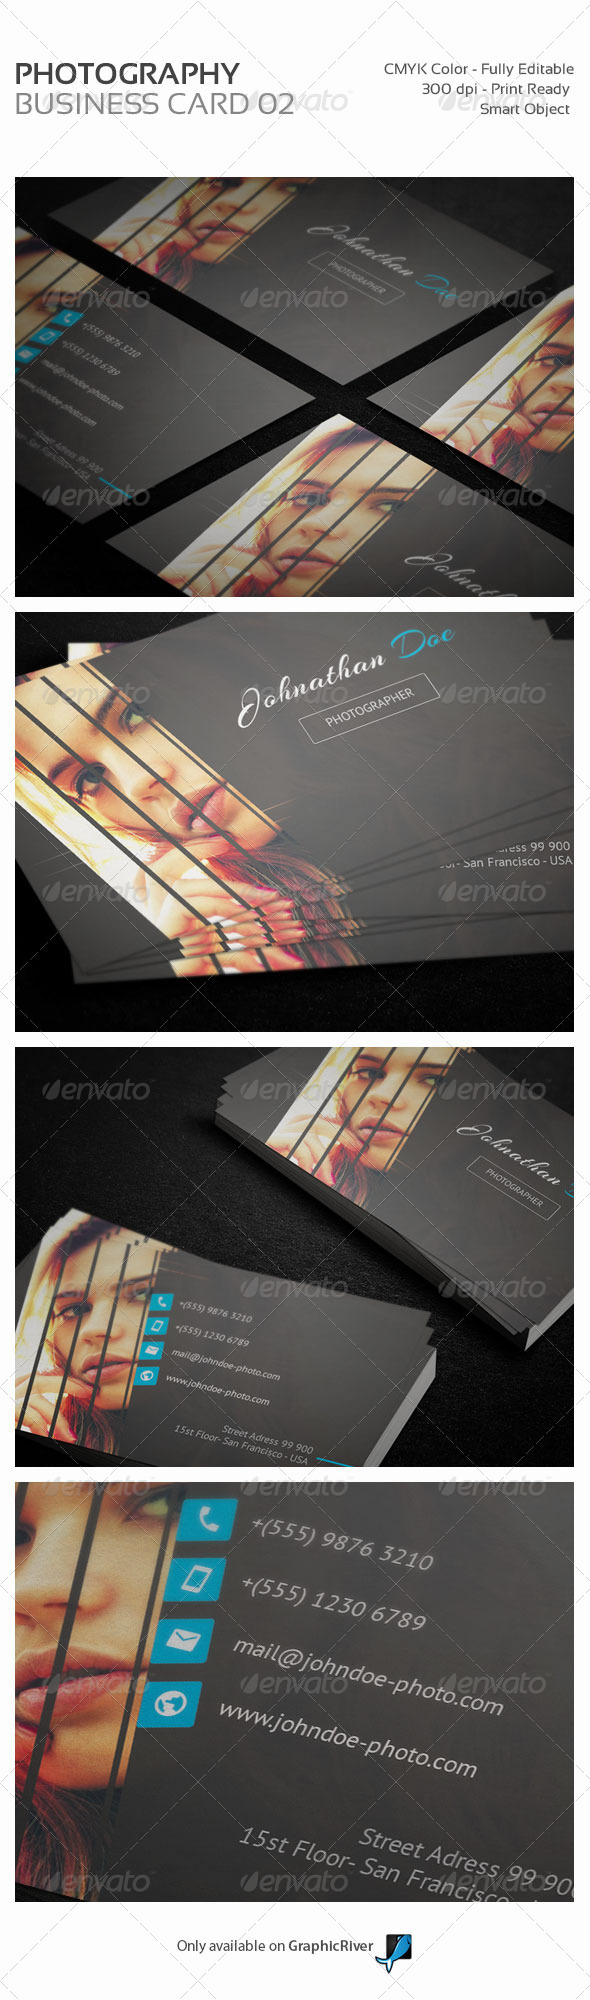 GraphicRiver Photography Personal Business Card 02 8466935